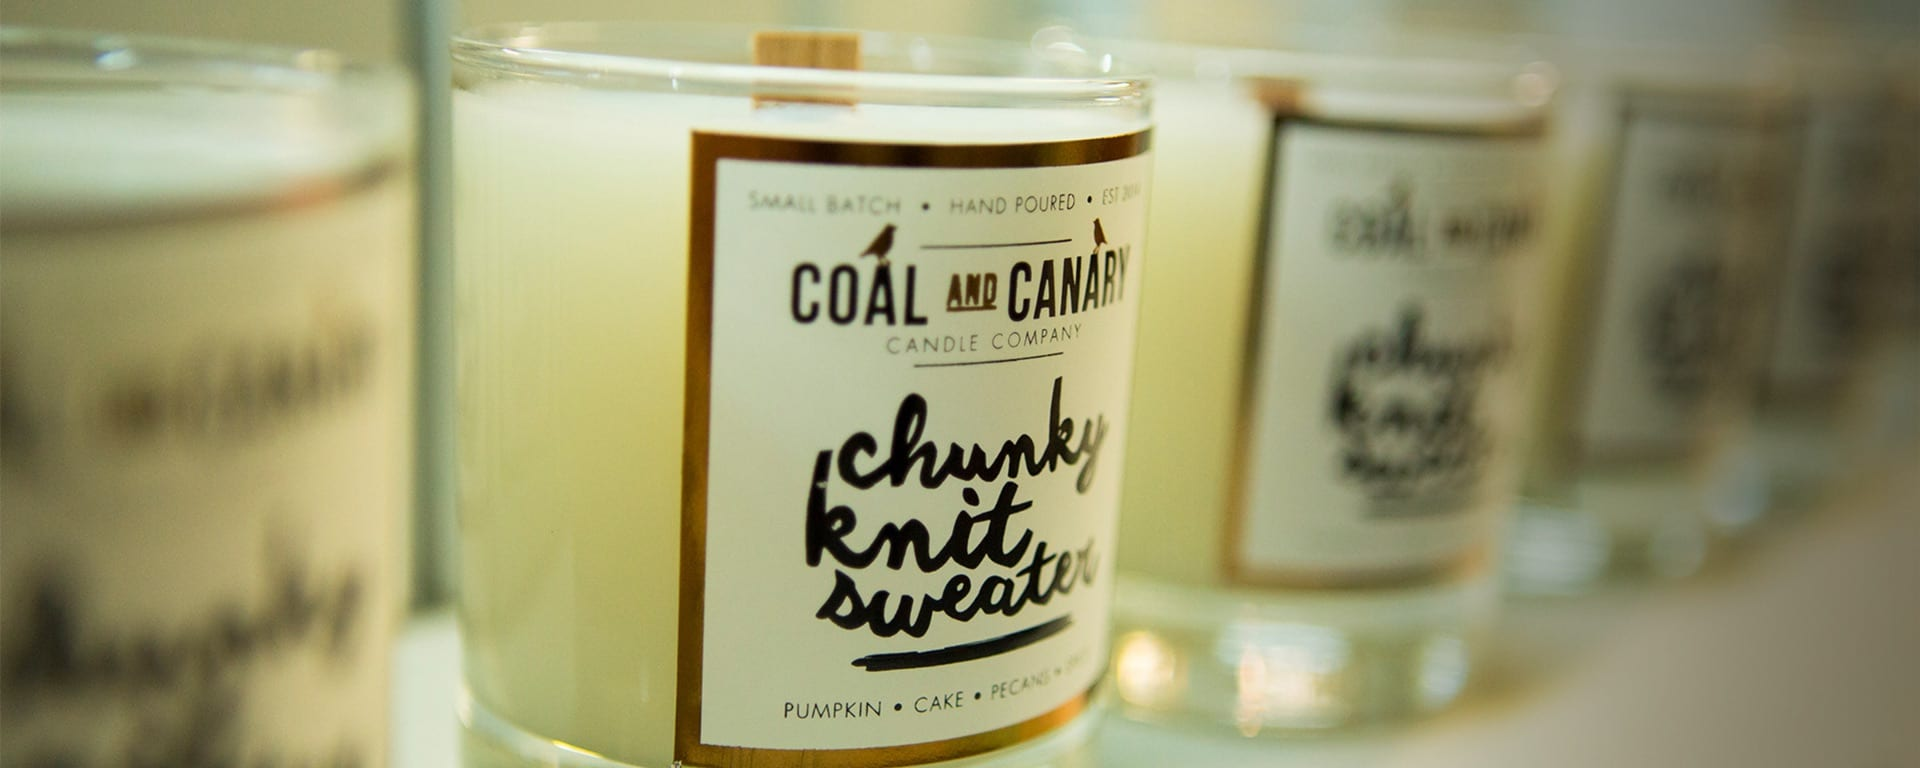 Coal and Canary candles